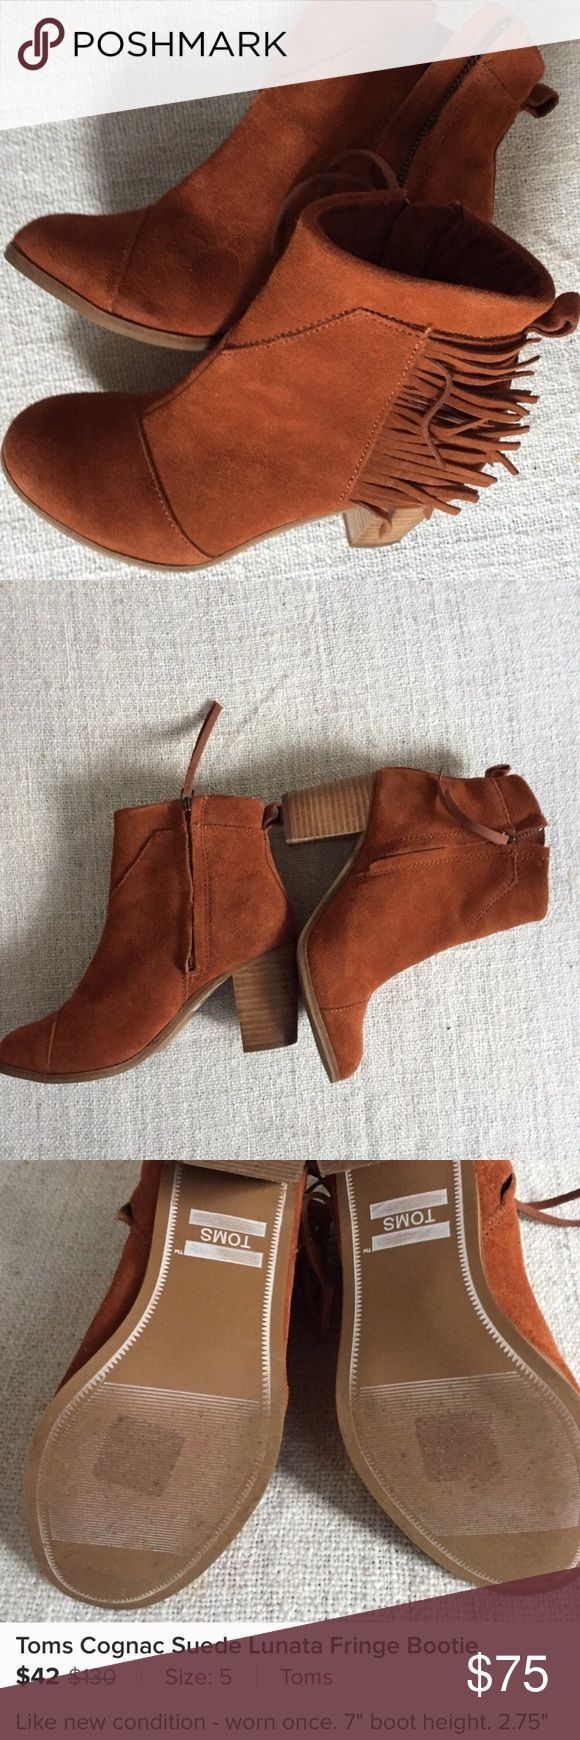 """Toms Cognac Suede Lunata Fringe Ankle Boot Hard to find boho inspired Toms suede bootie. These have been worn once. They have had waterproofing treatment applied. The boots come with Toms dust bag for storage. Size 5. 7"""" Boot Height. 2.5 """" stacked heel. No scuffs. Excellent condition. I have shoe shop waterproof all of my boots. Toms Shoes Ankle Boots & Booties"""